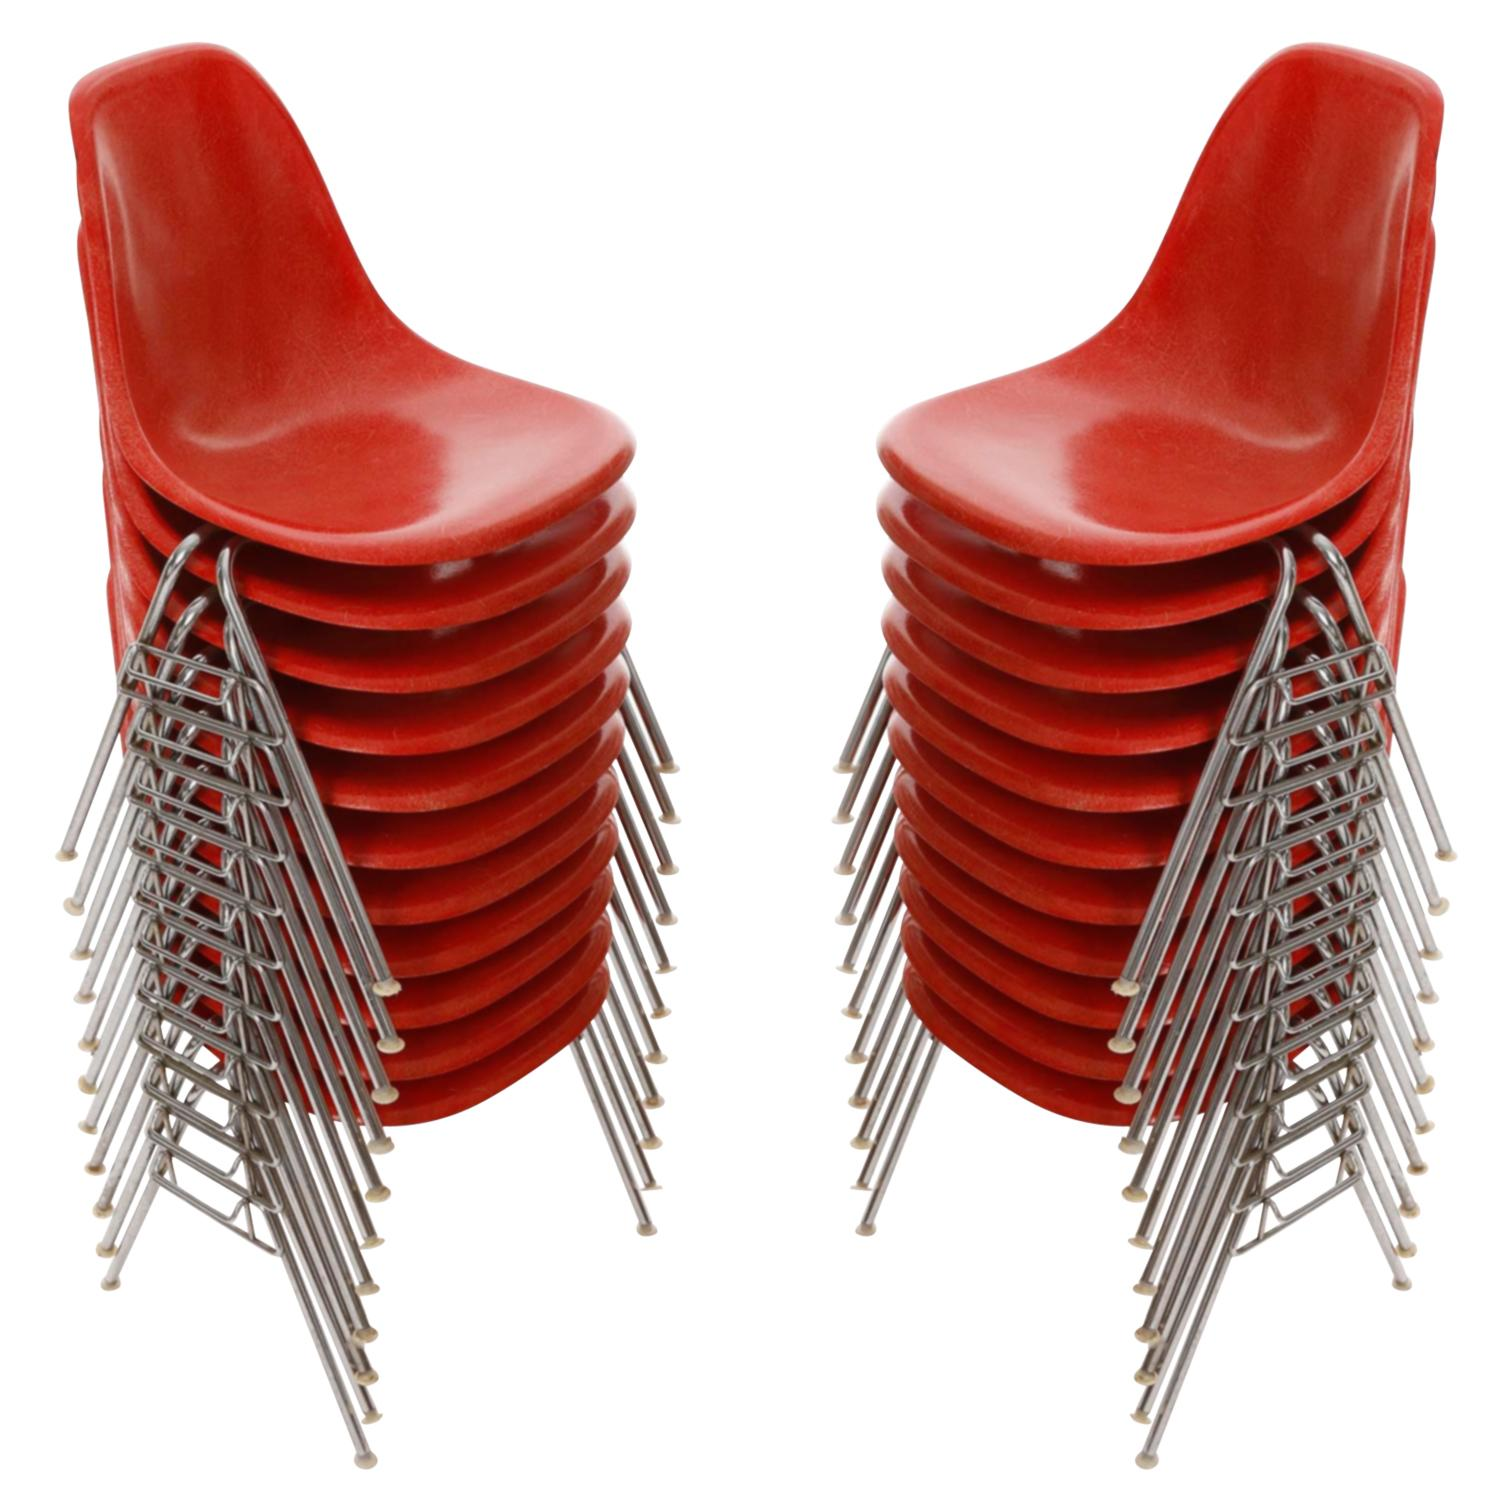 22 DSS Stacking Chairs, Charles & Ray Eames, Herman Miller, Red Fiberglass, 1974